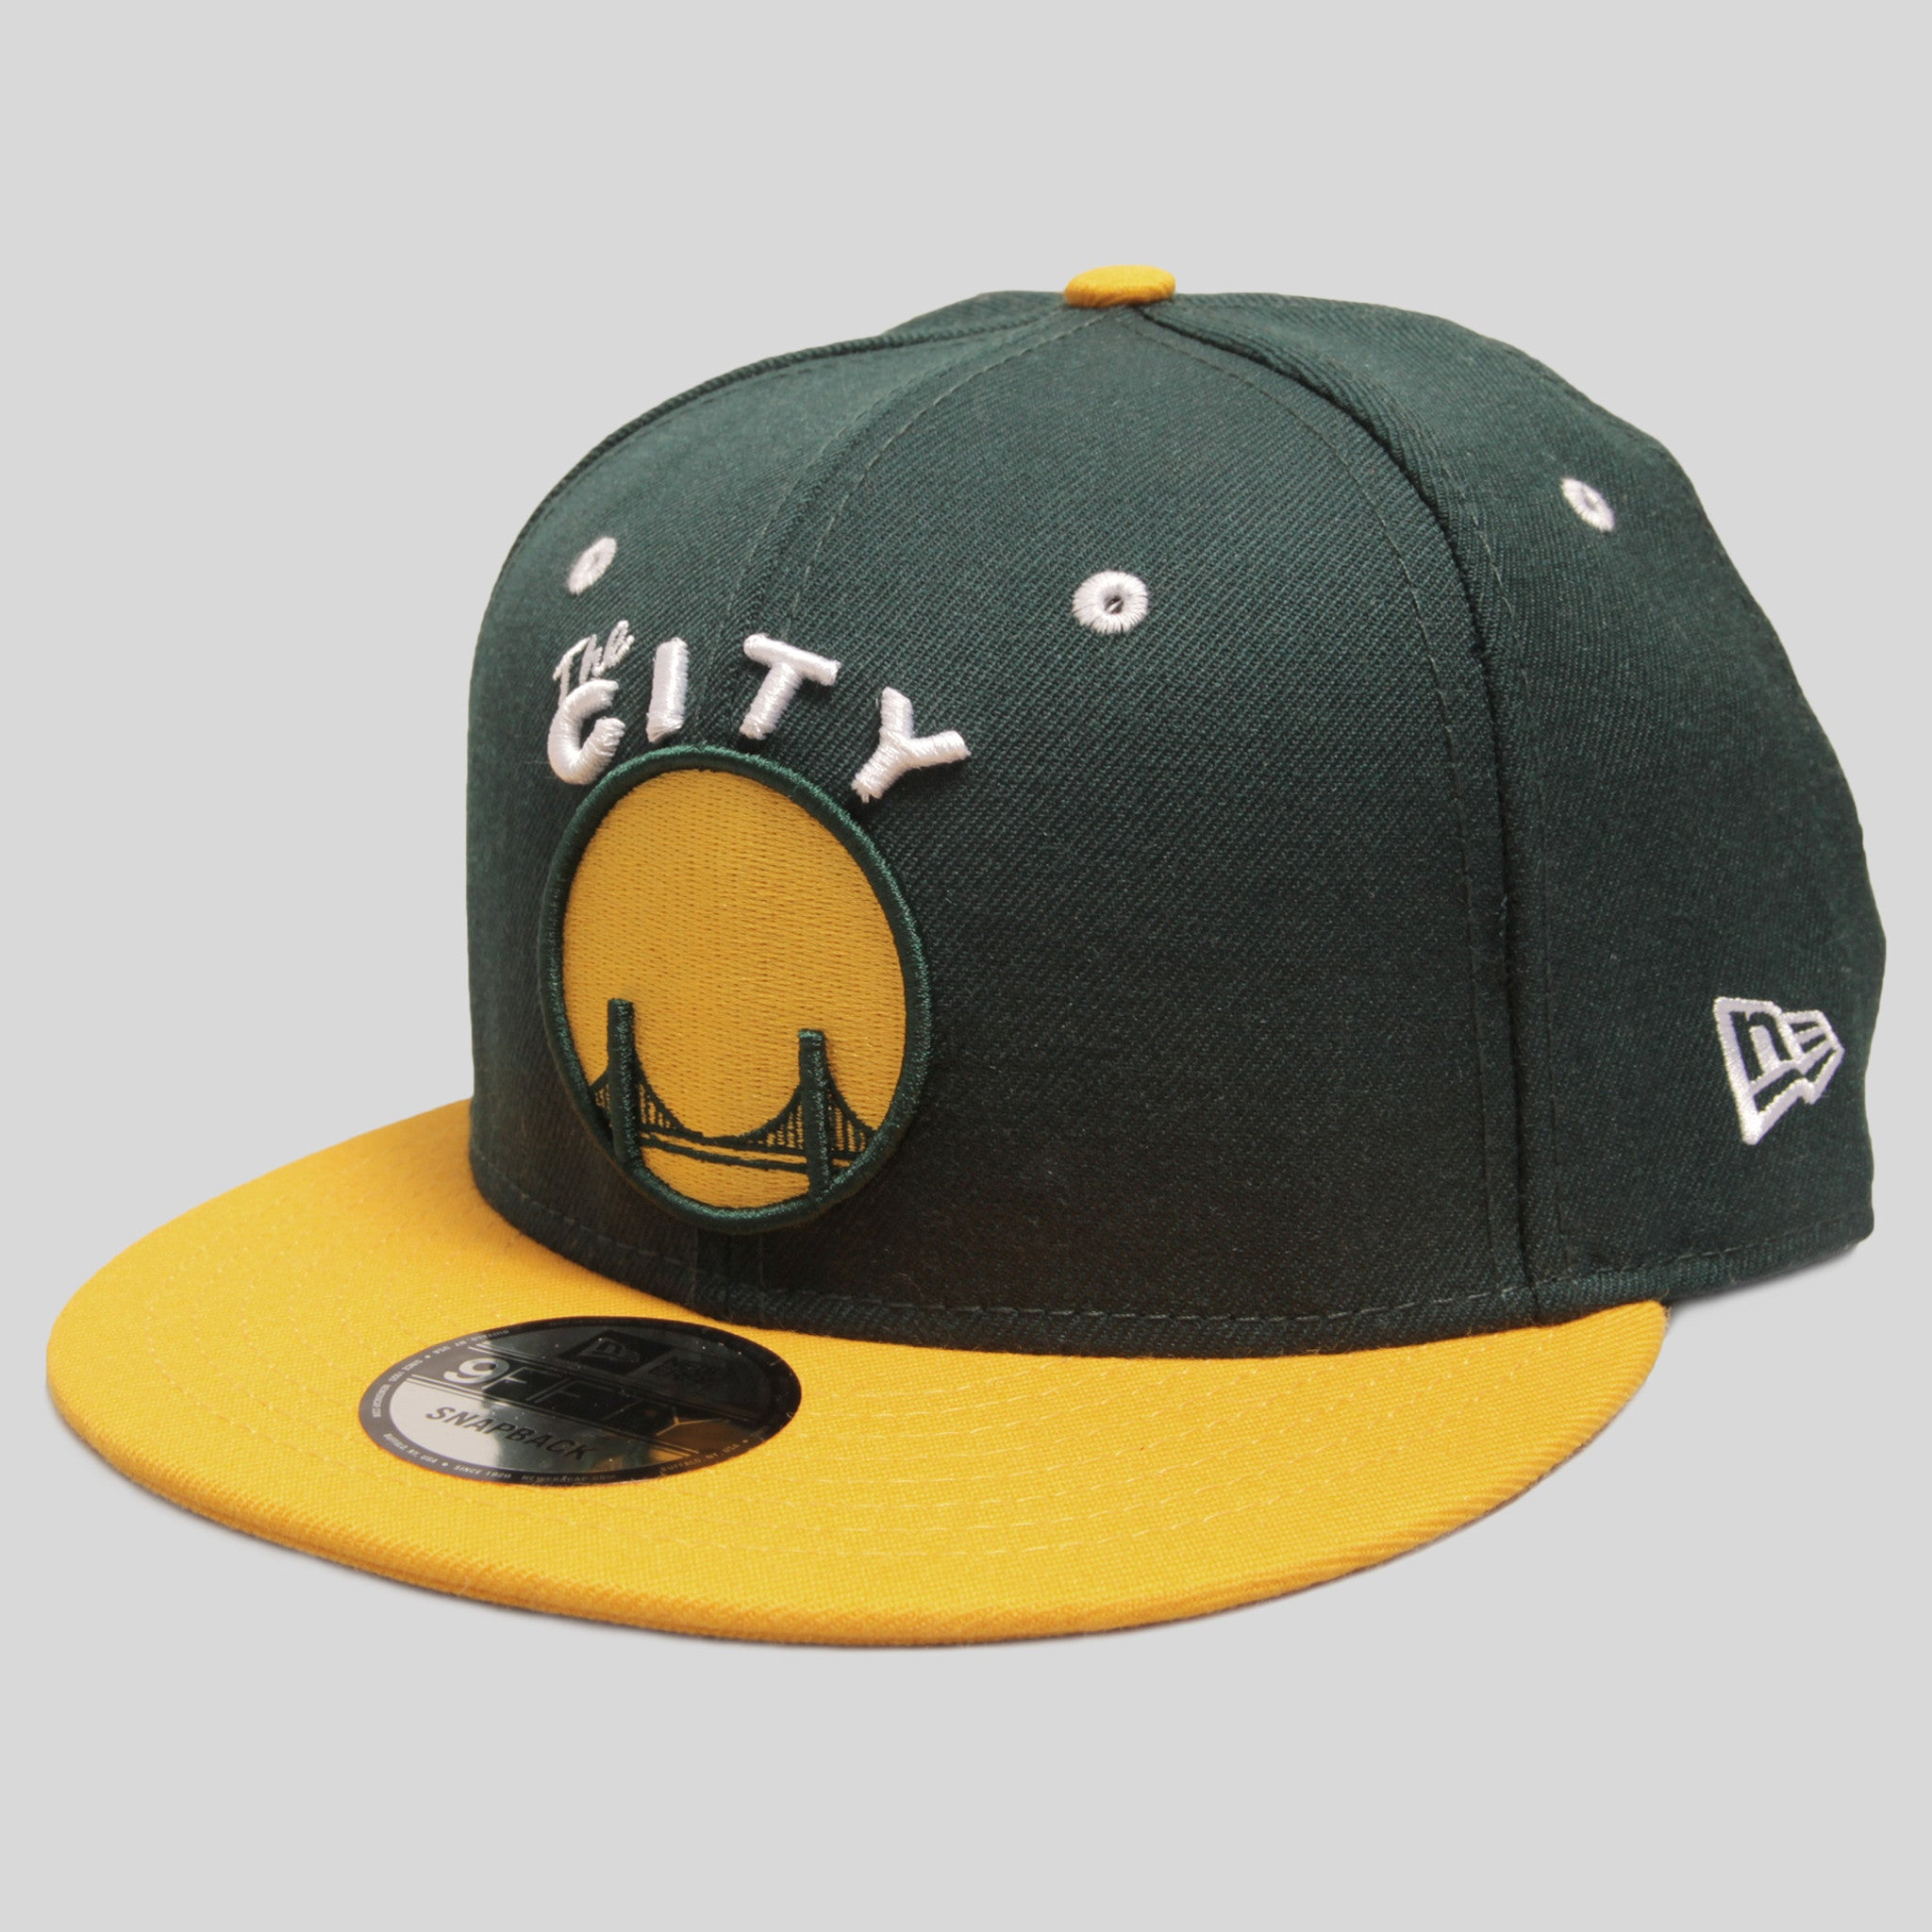 c86d893f52154 Upper Playground - Lux - THE CITY New Era Snapback in Green Gold